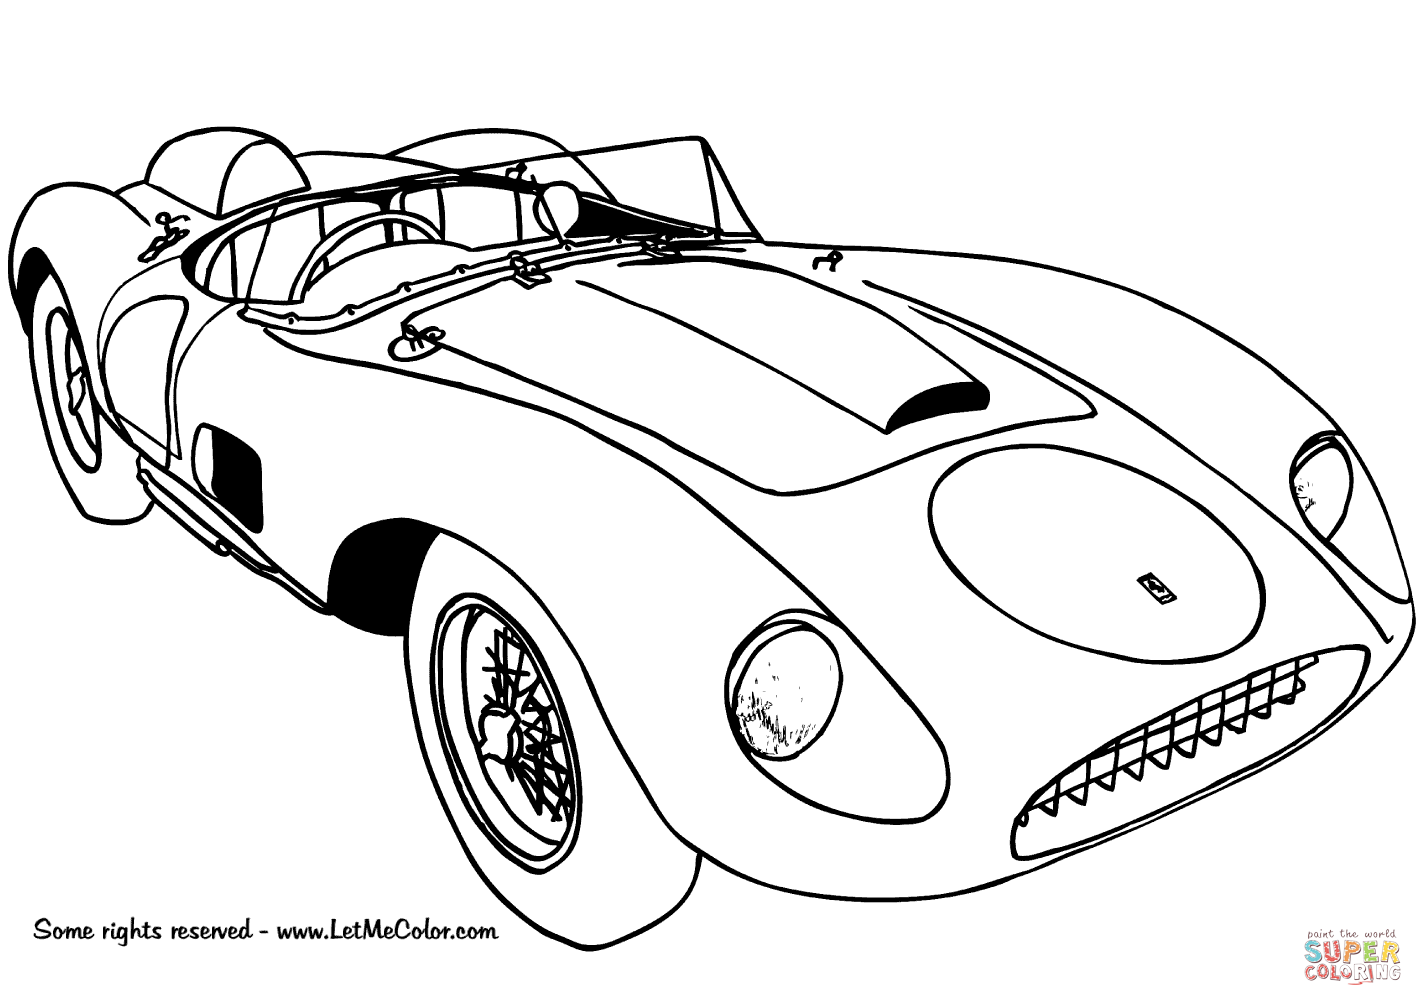 ferrari car drawing at getdrawings com